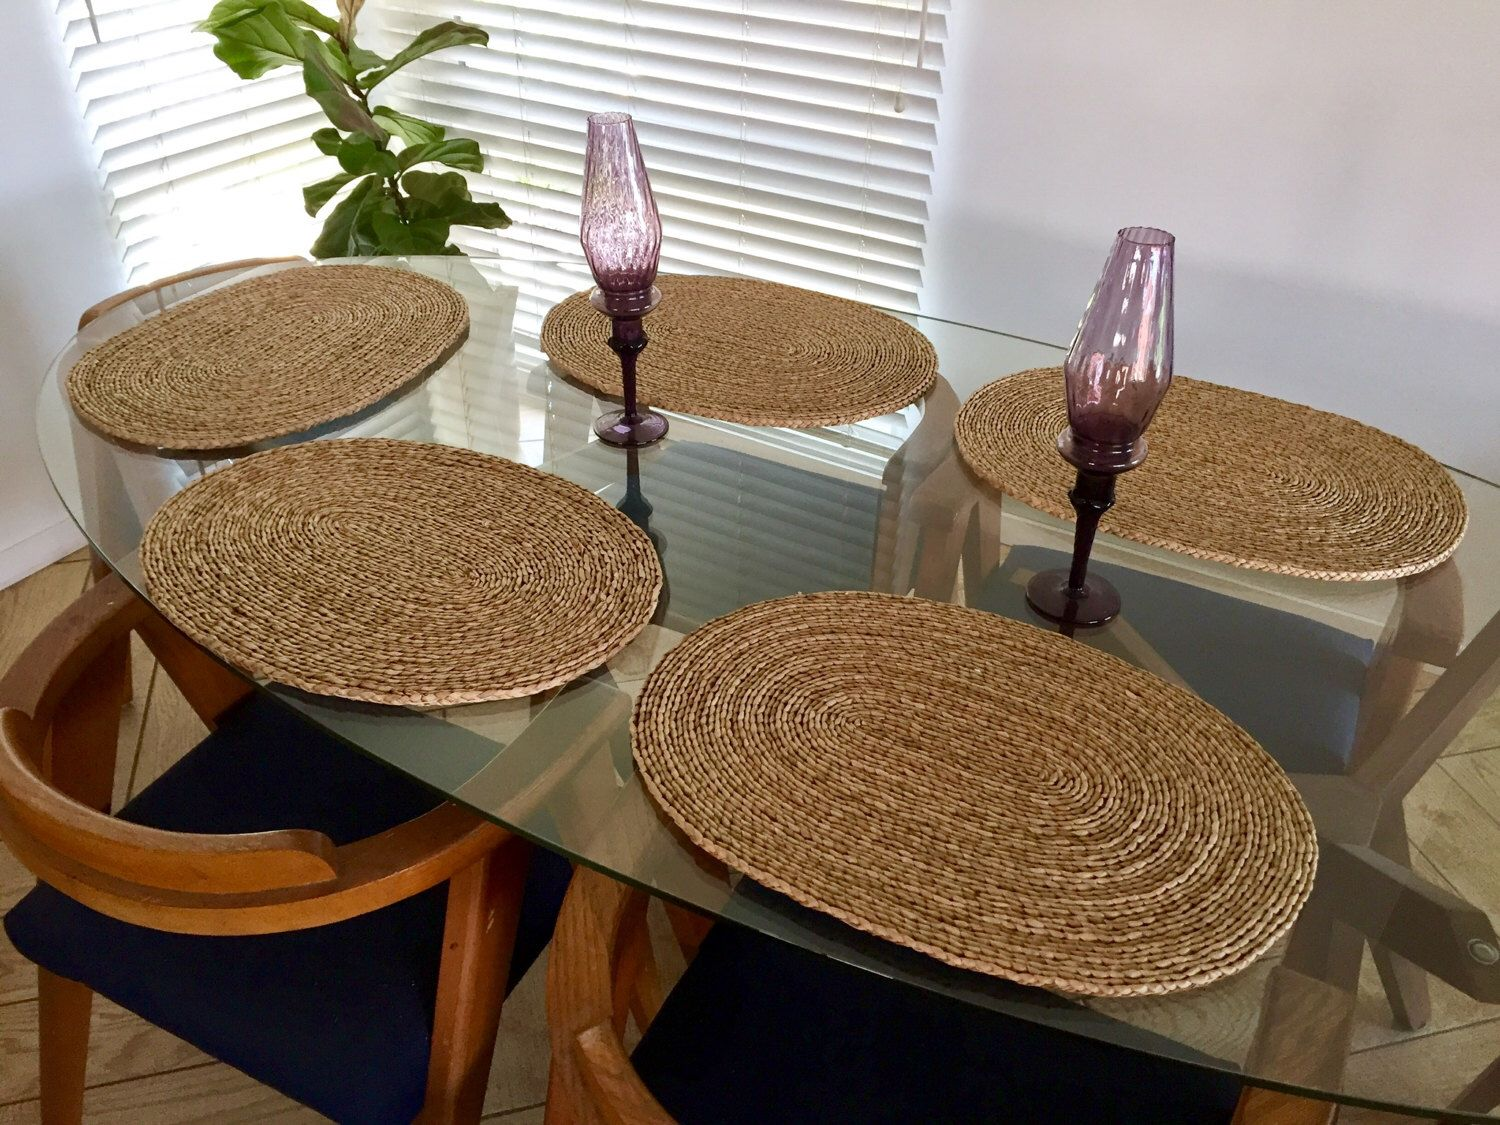 5 Wicker Placemats Set Of Oval Woven Rattan Shaped